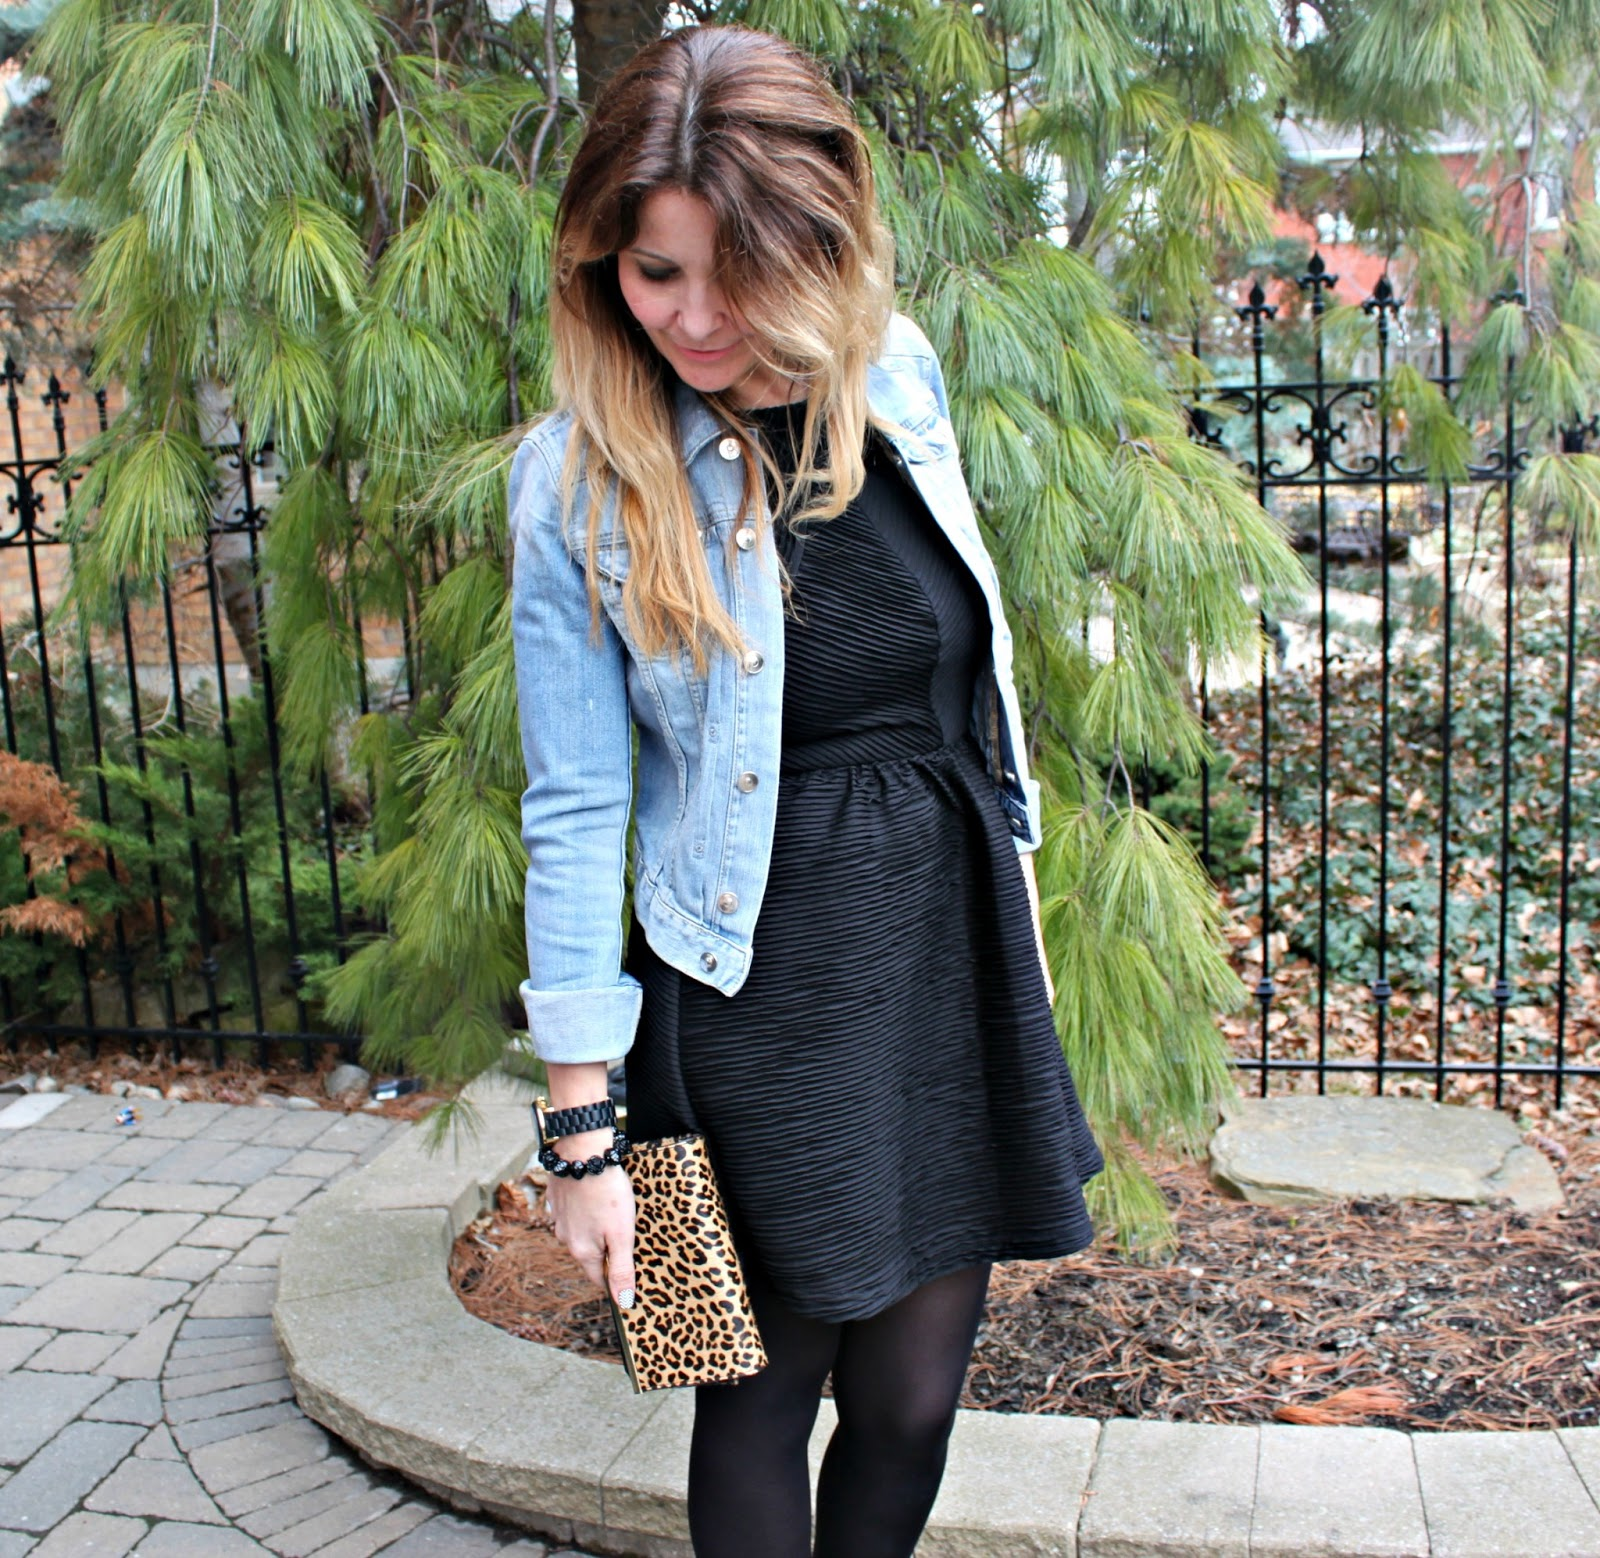 Black dress jean jacket - Another Picture Of Denim Jacket With Black Dress